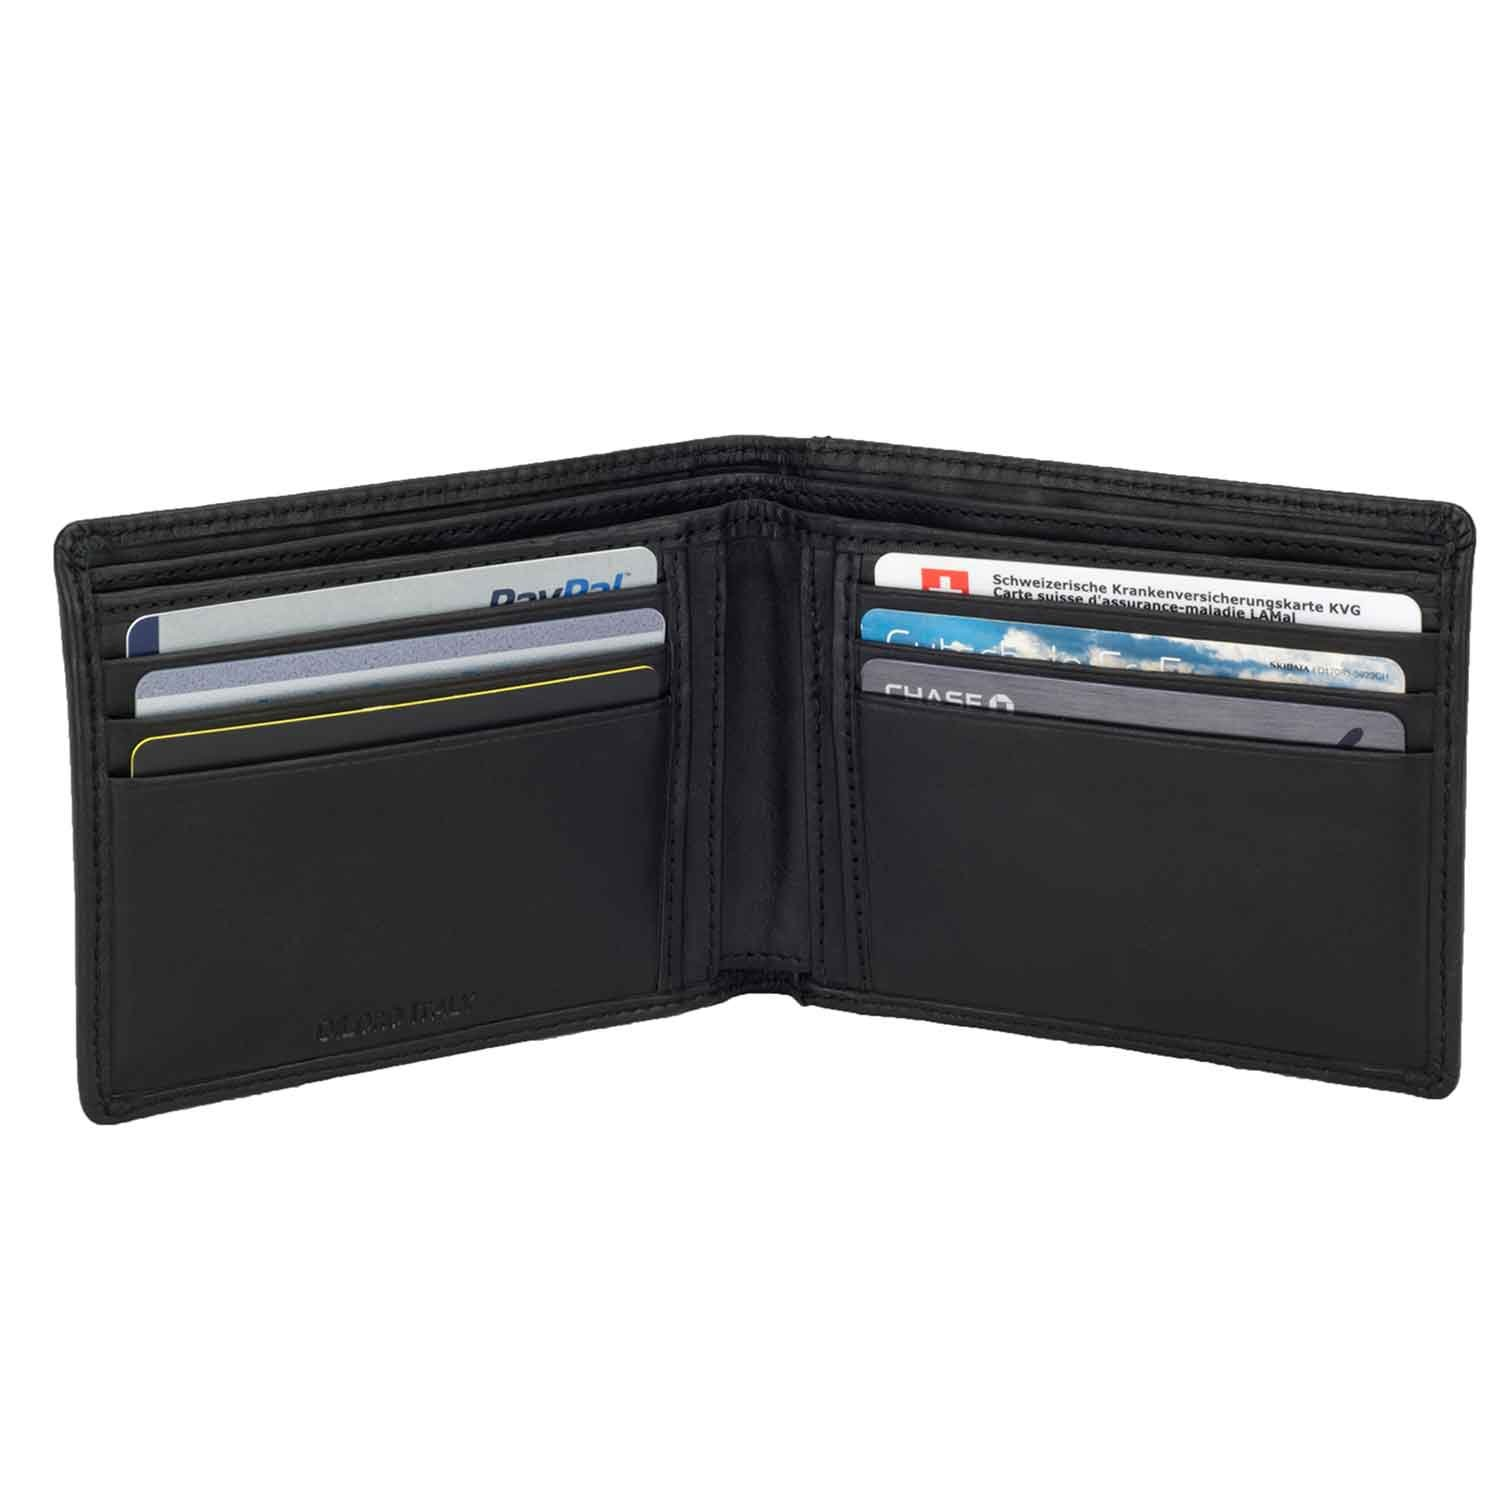 DiLoro Italy Men's Slim Bifold Wallet Black Italian Genuine Full Grain Top Quality Nappa Leather Natural Handmade with Pocket and RFID Blocking 2402-BK